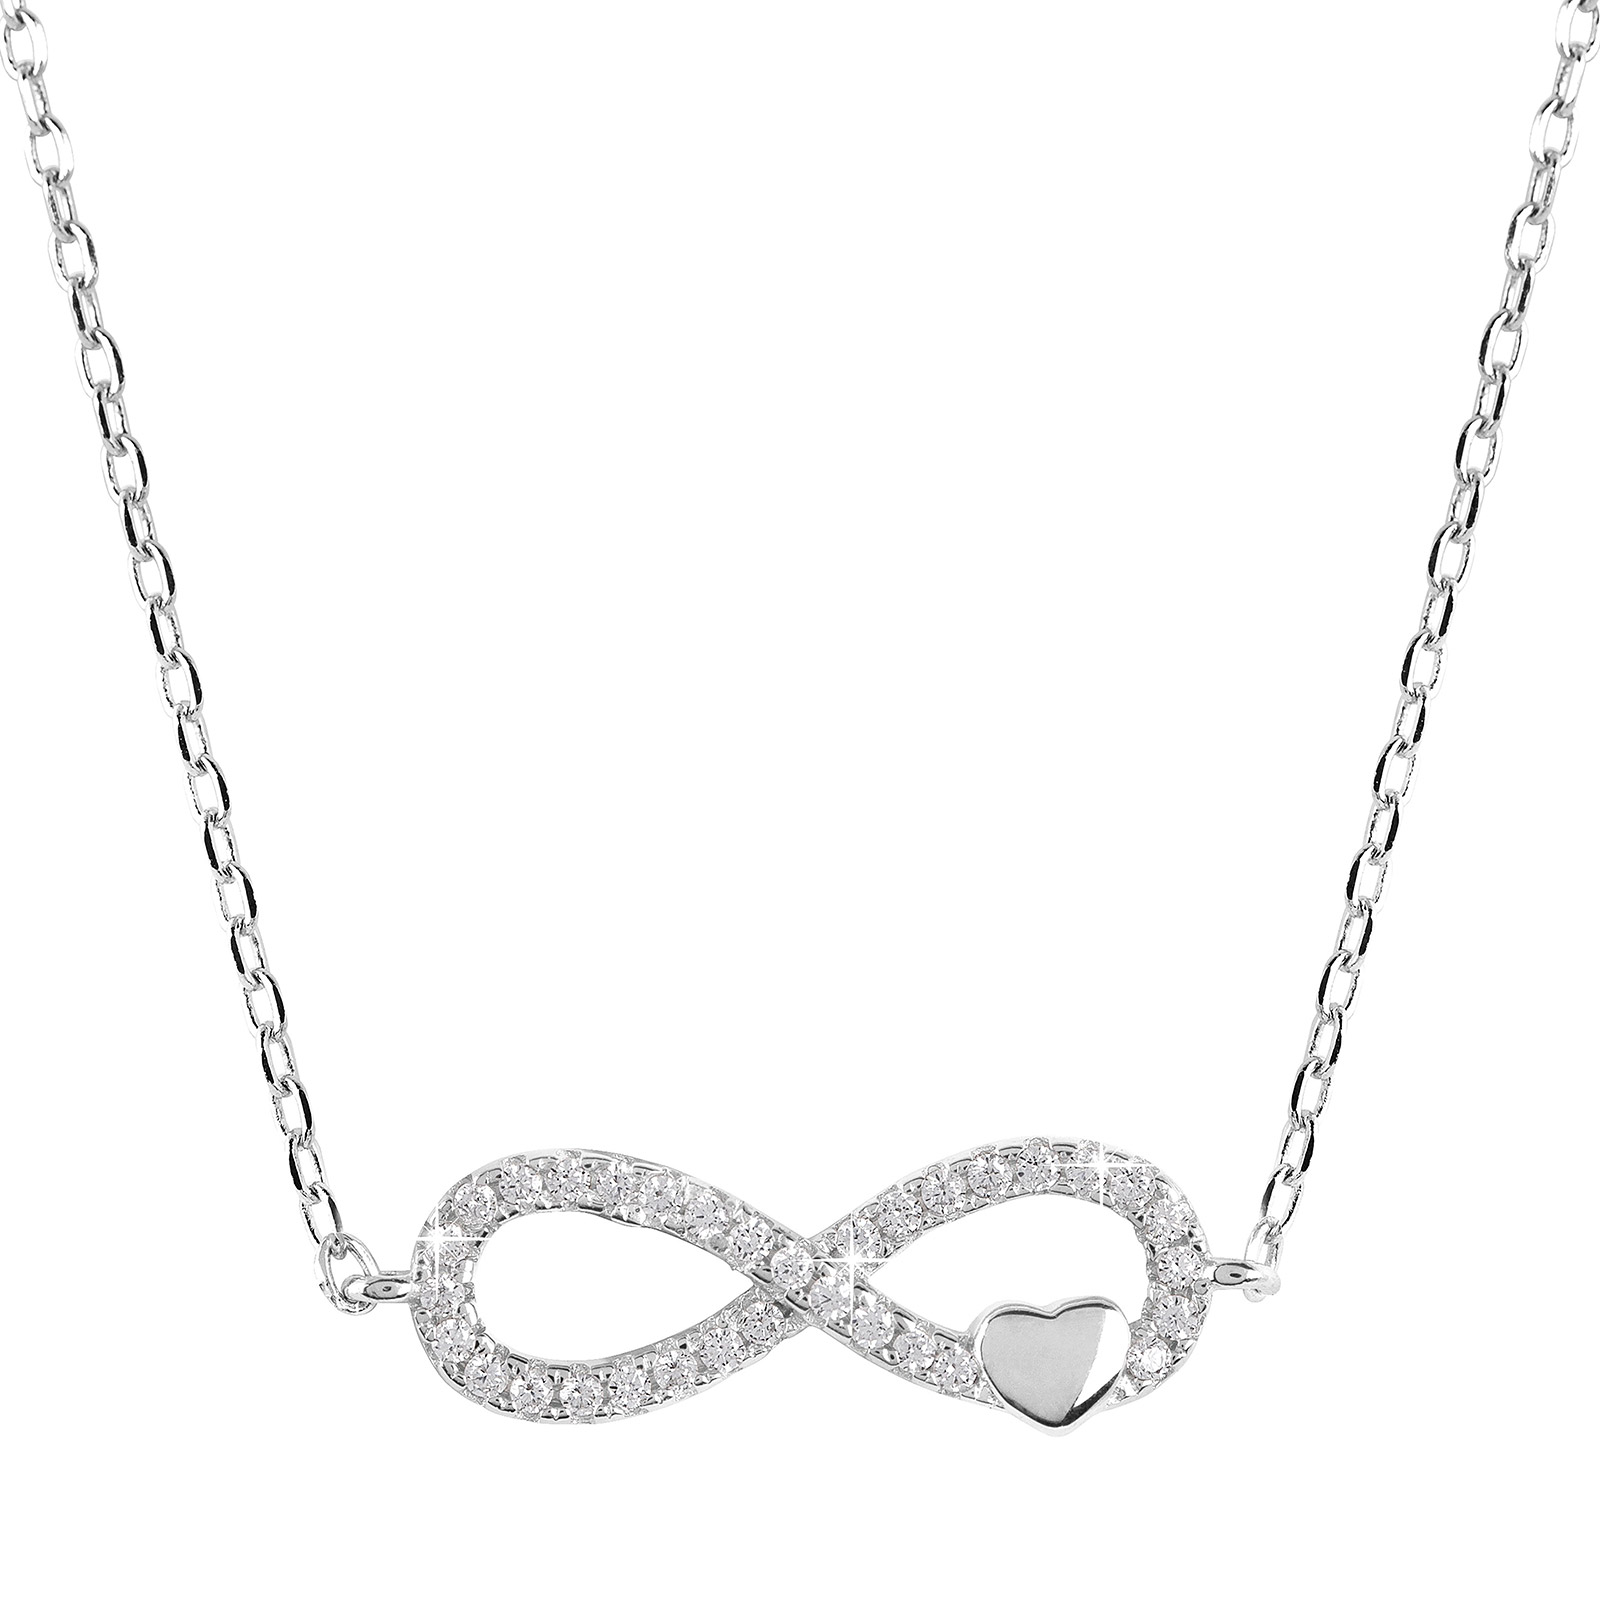 Halsband Infinity Sterling silver 925